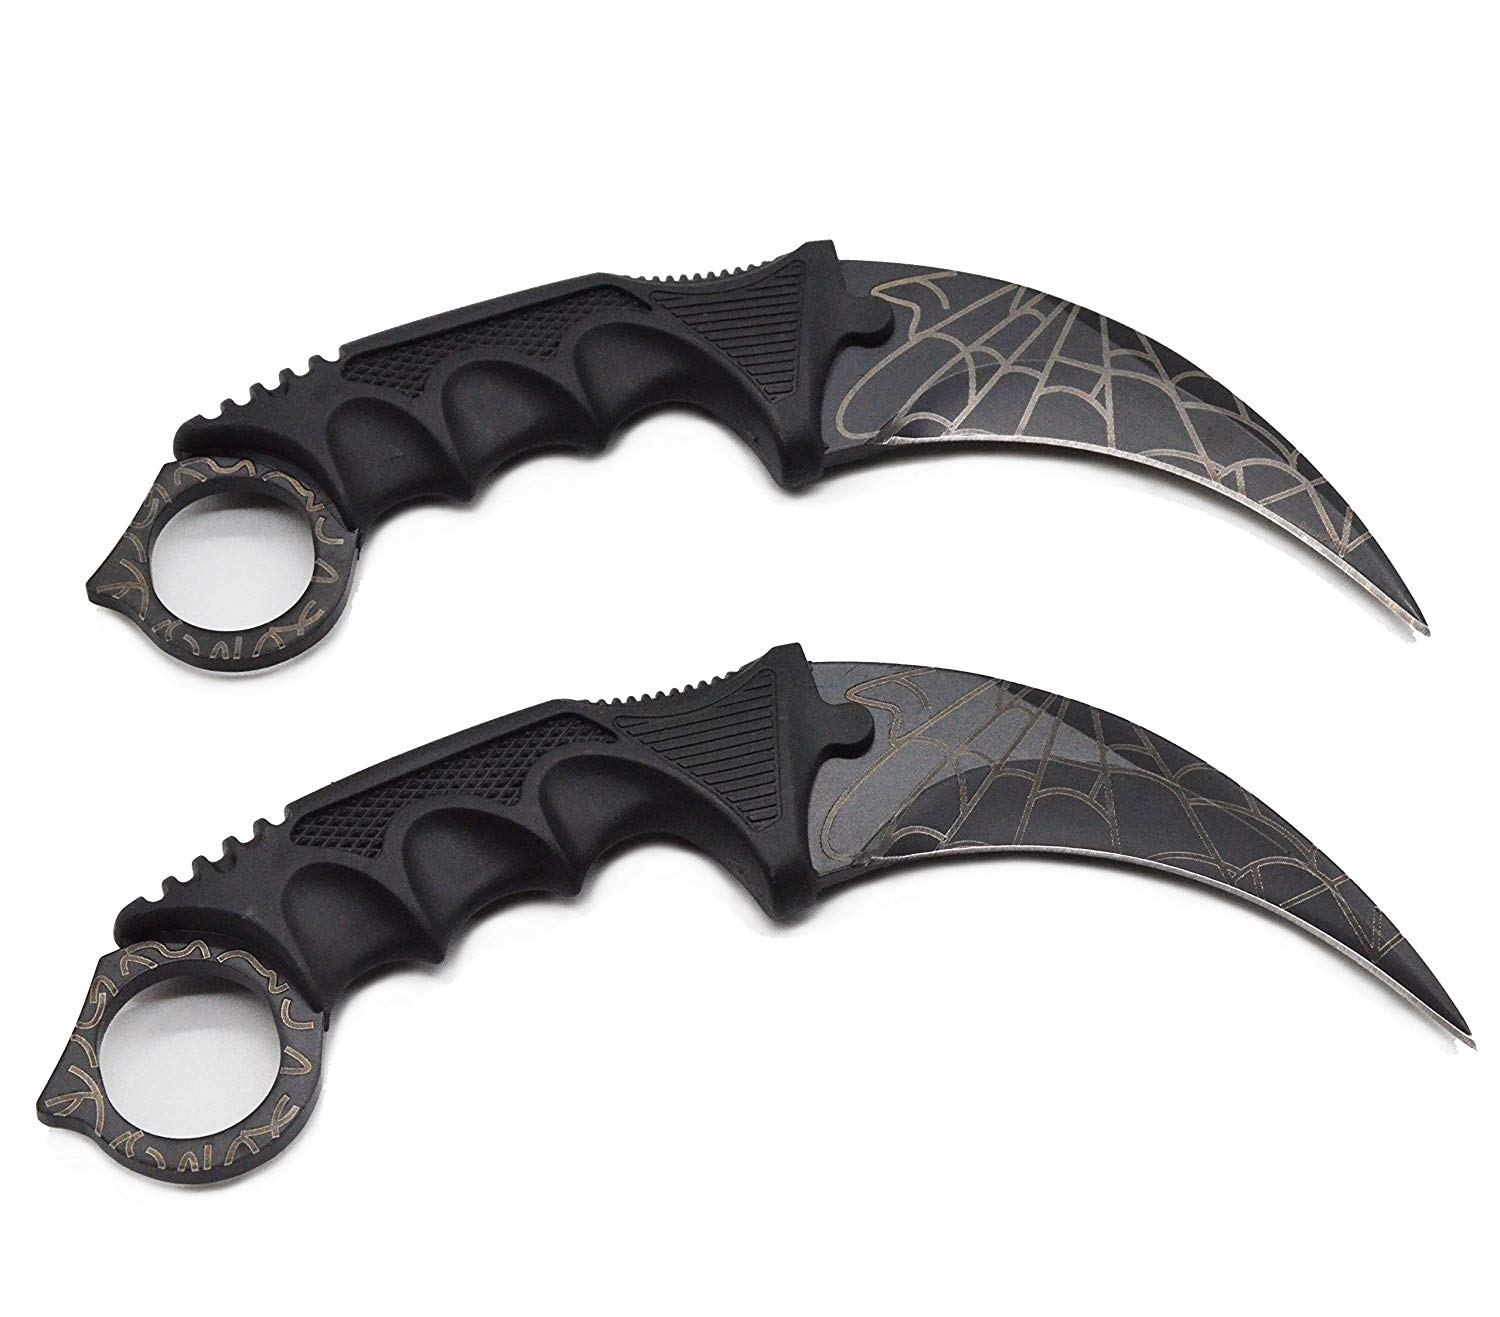 Karambit, Stainless Steel Camping Hunting Knife/Tactical Knife/Karambit -Fixed Blade (Set of 2)